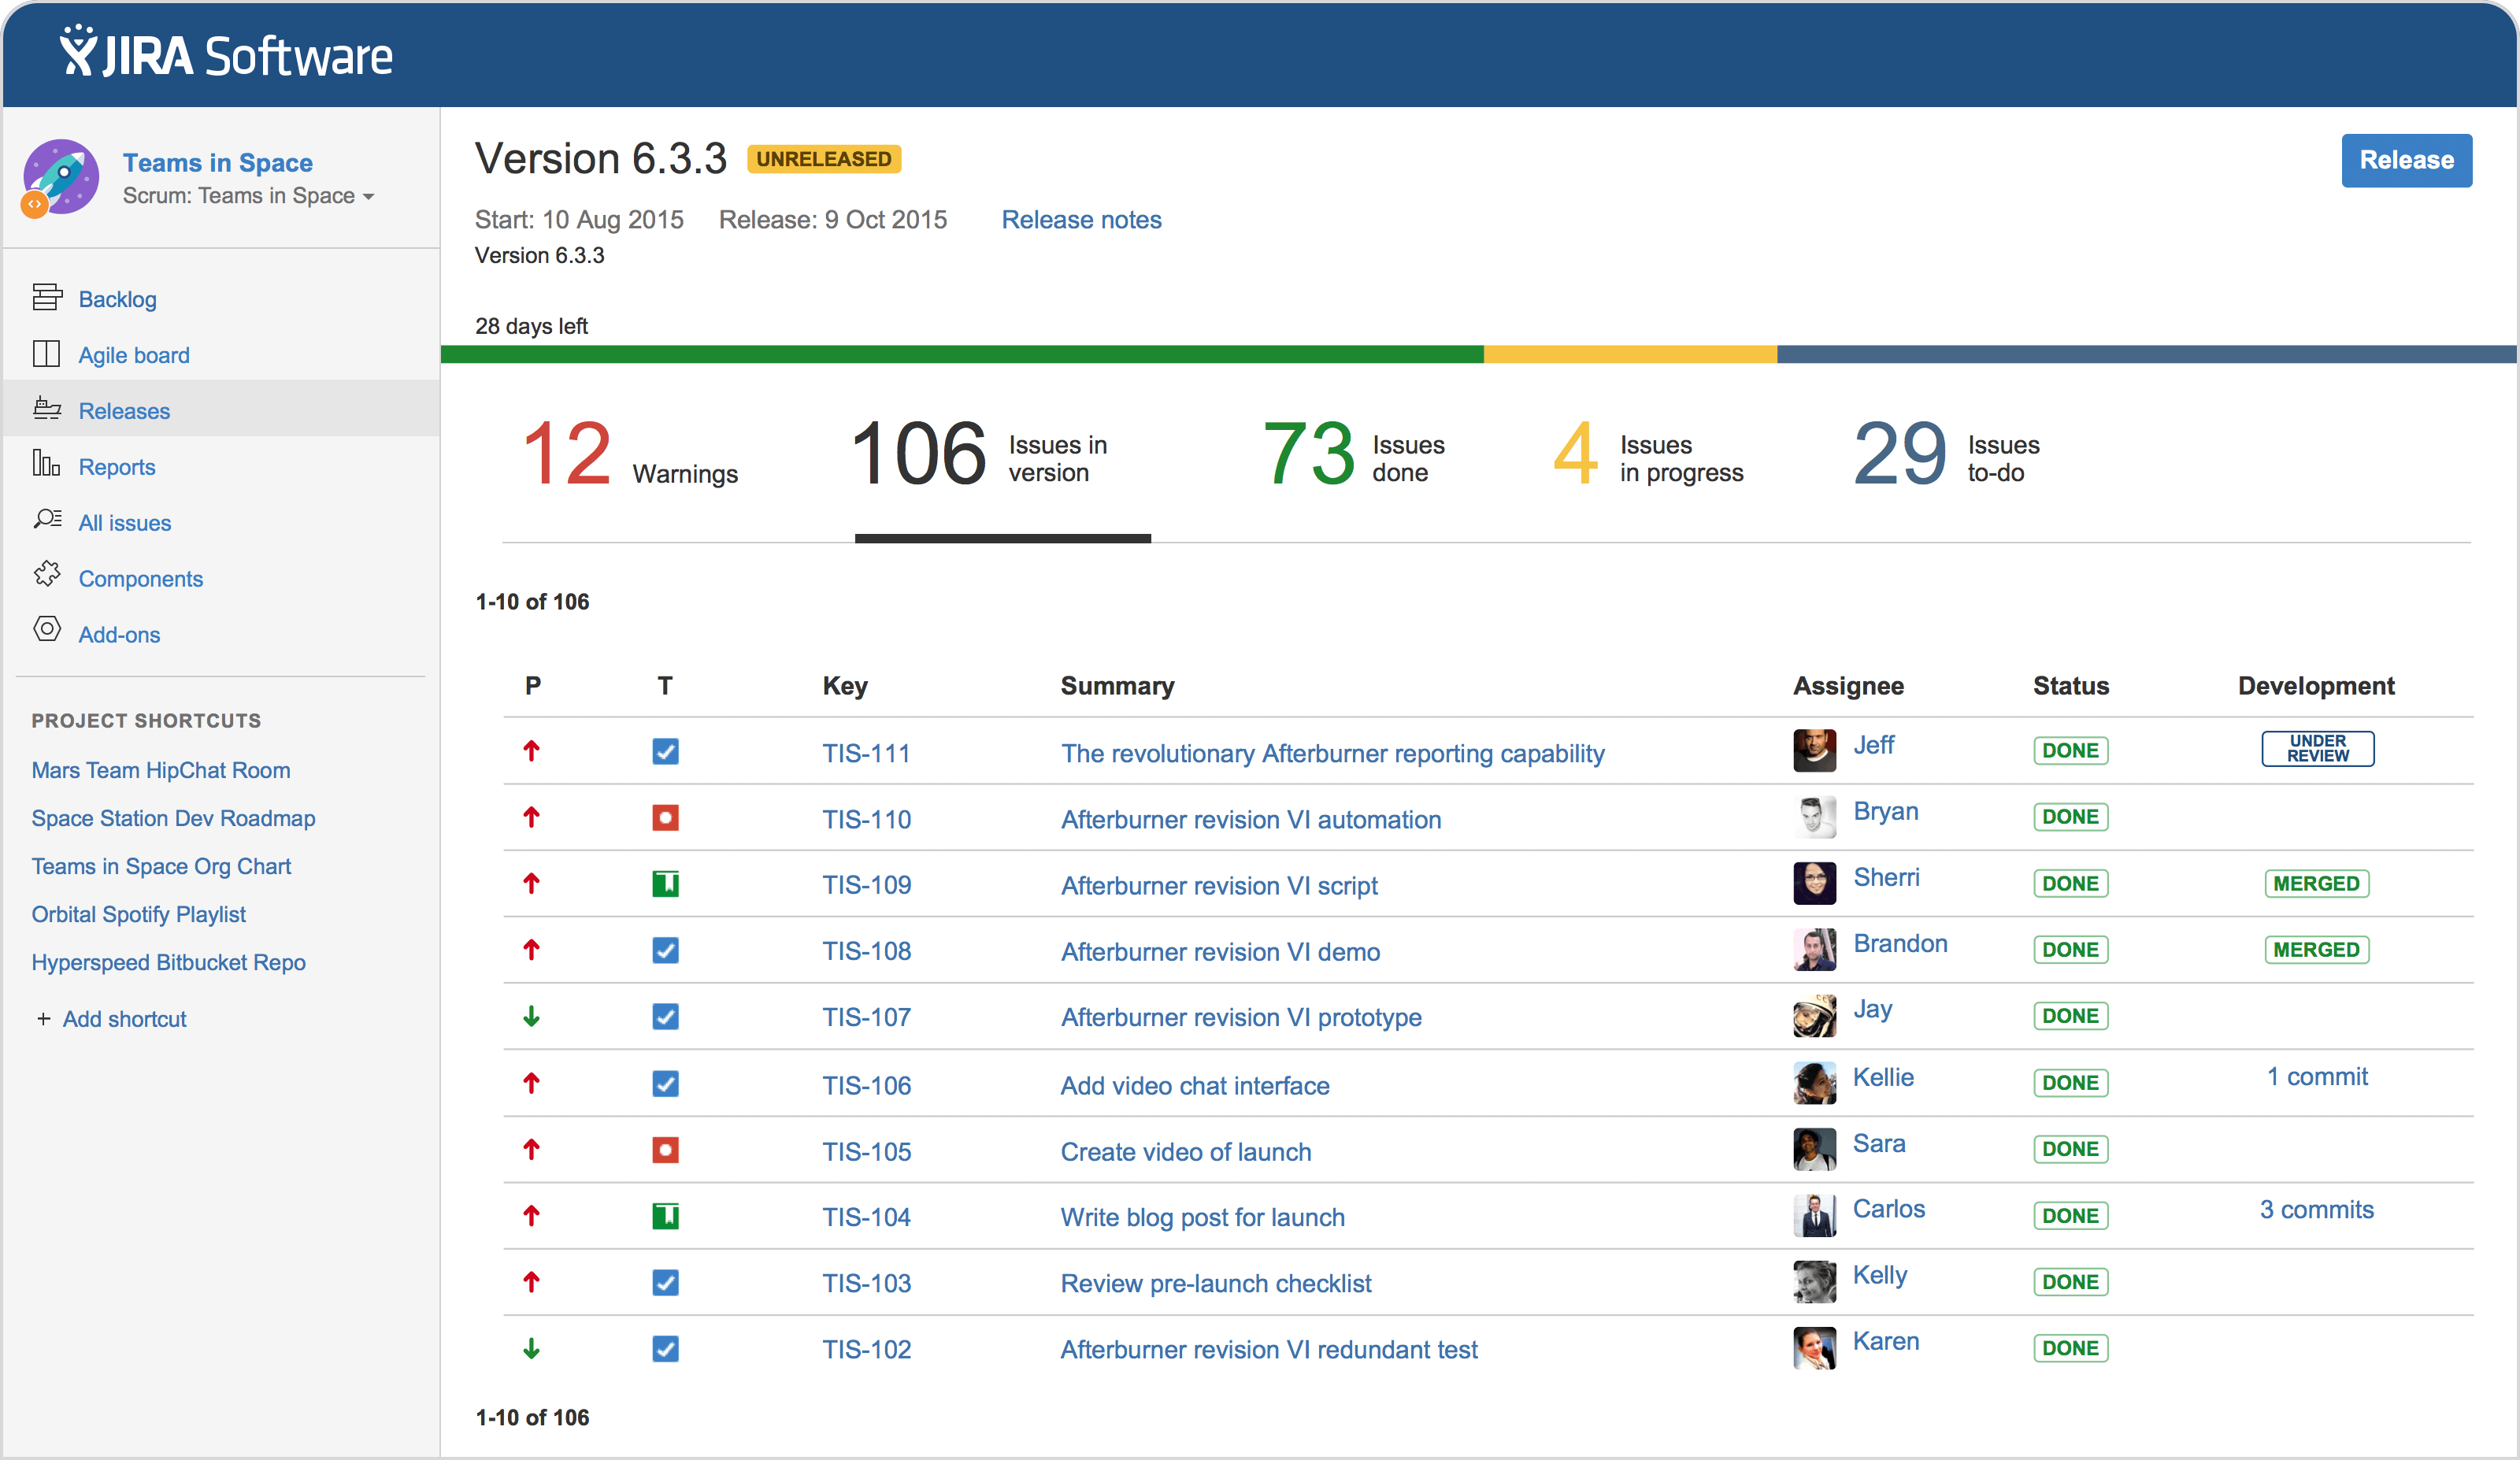 A sample dashboard of Atlassian's JIRA product.